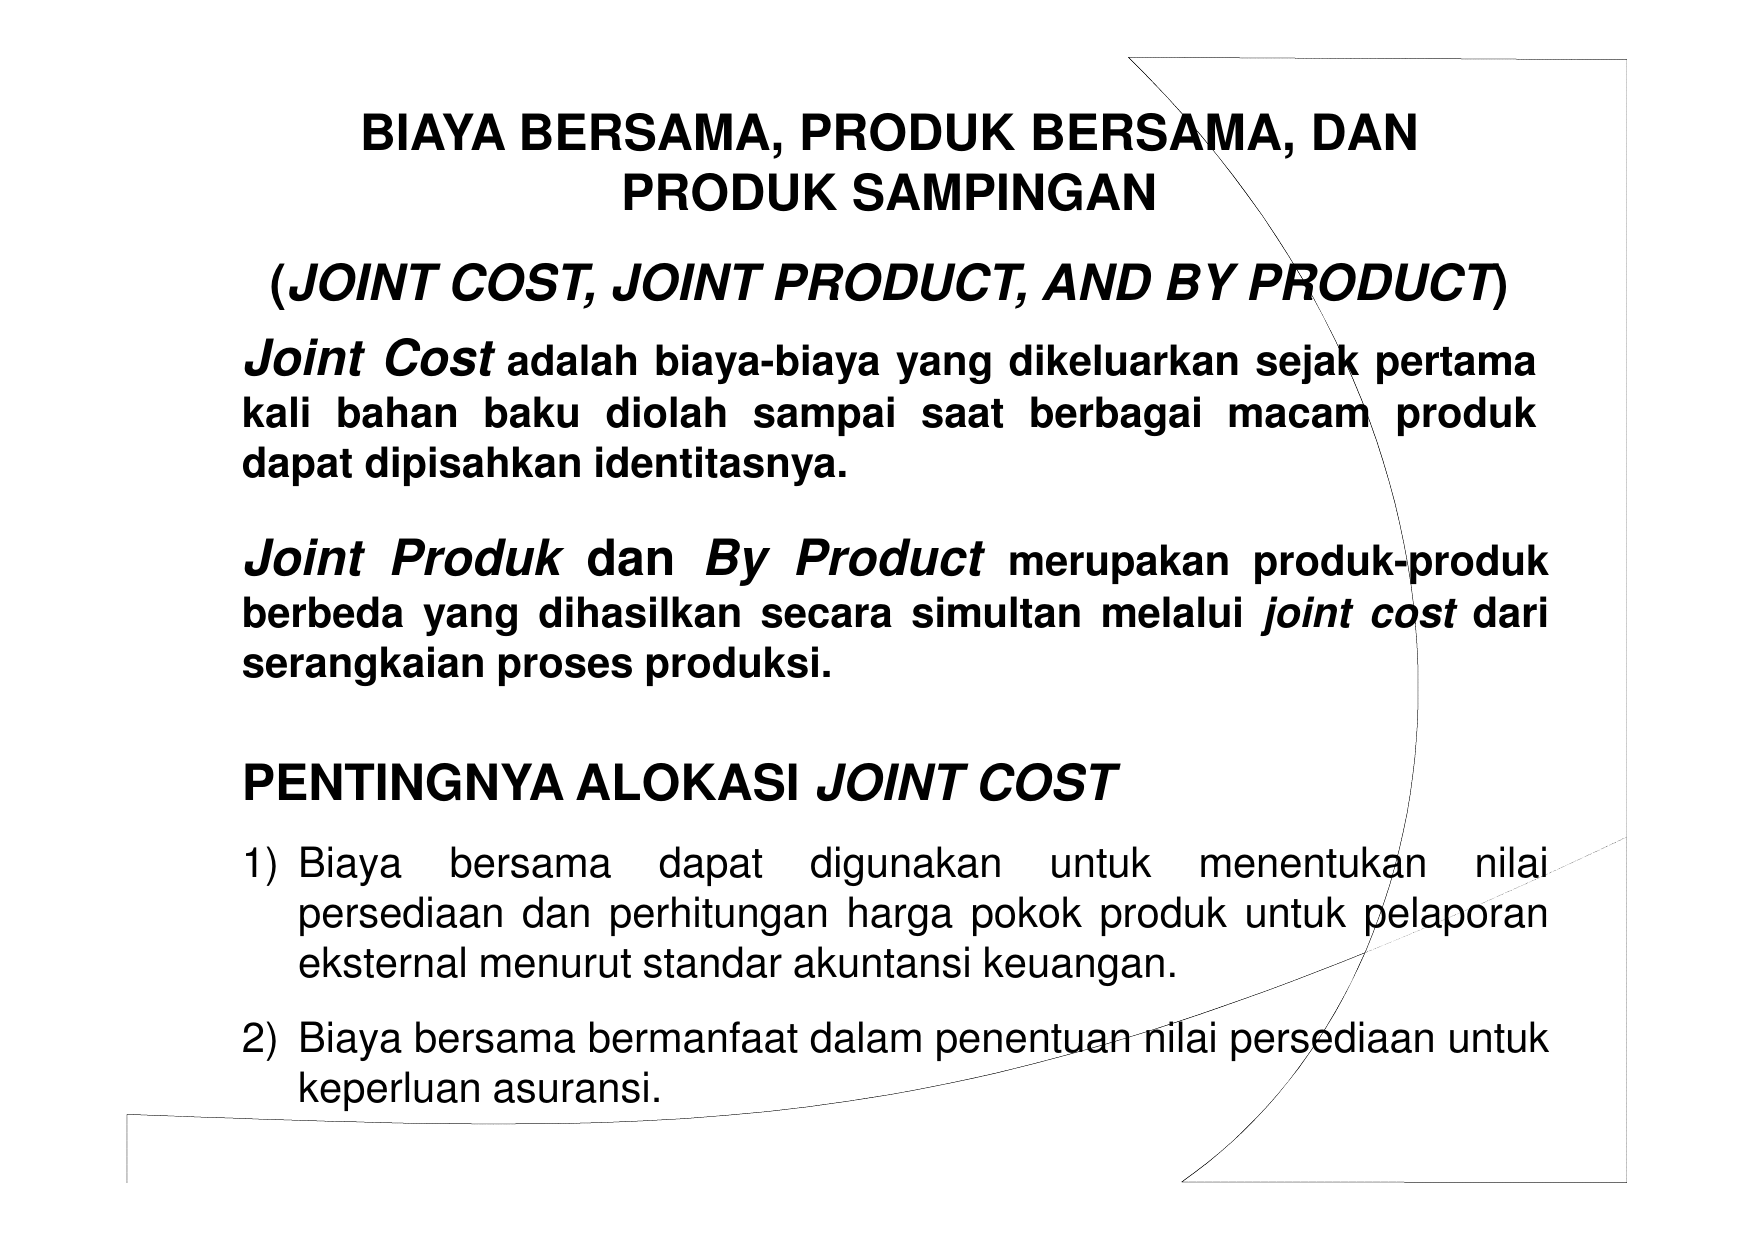 joint cost, joint product, and by product